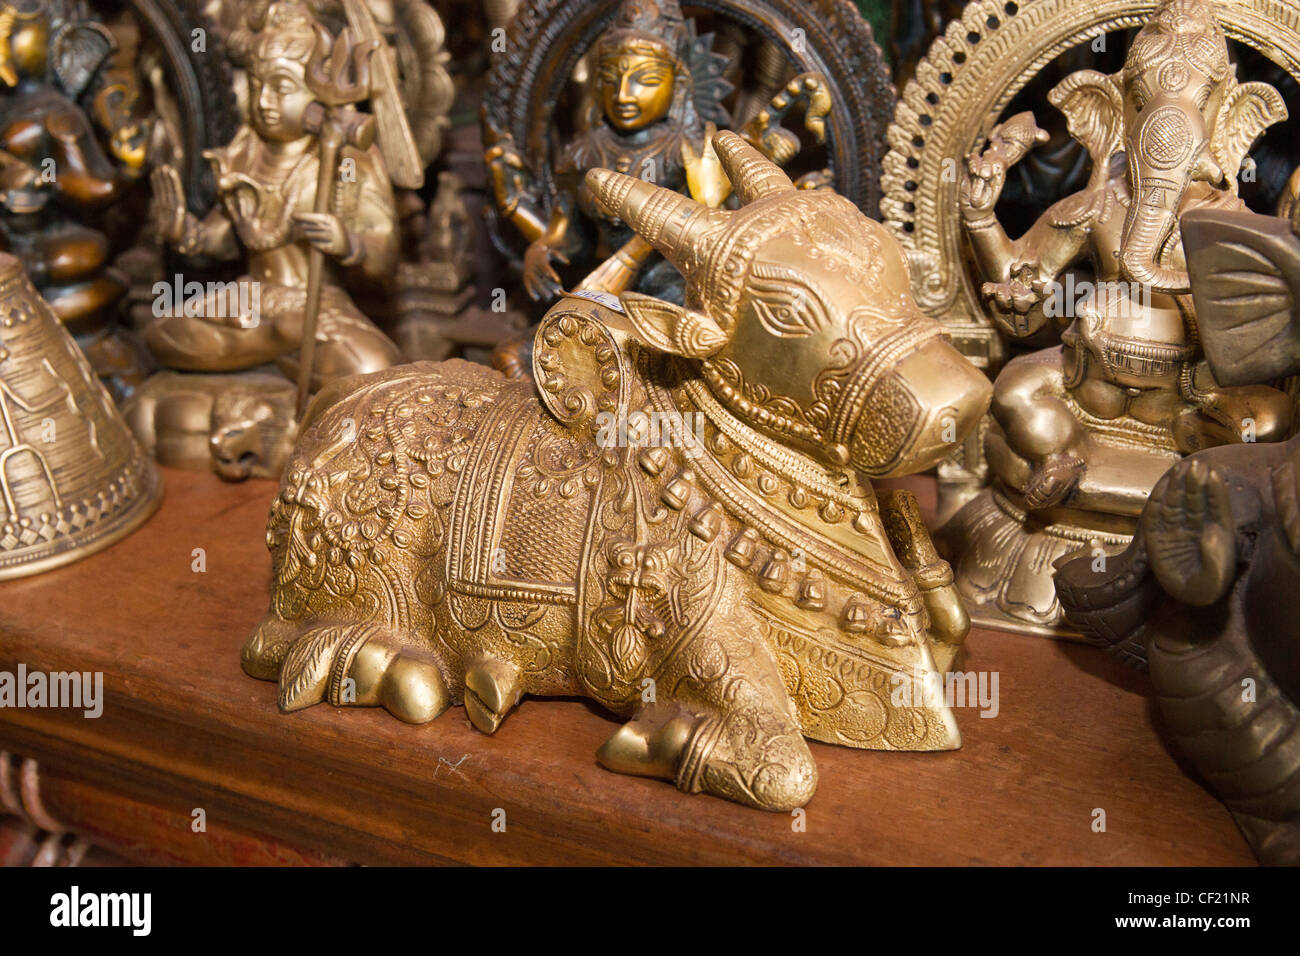 Asian Artifacts asian artifacts and antiques stock photo, royalty free image